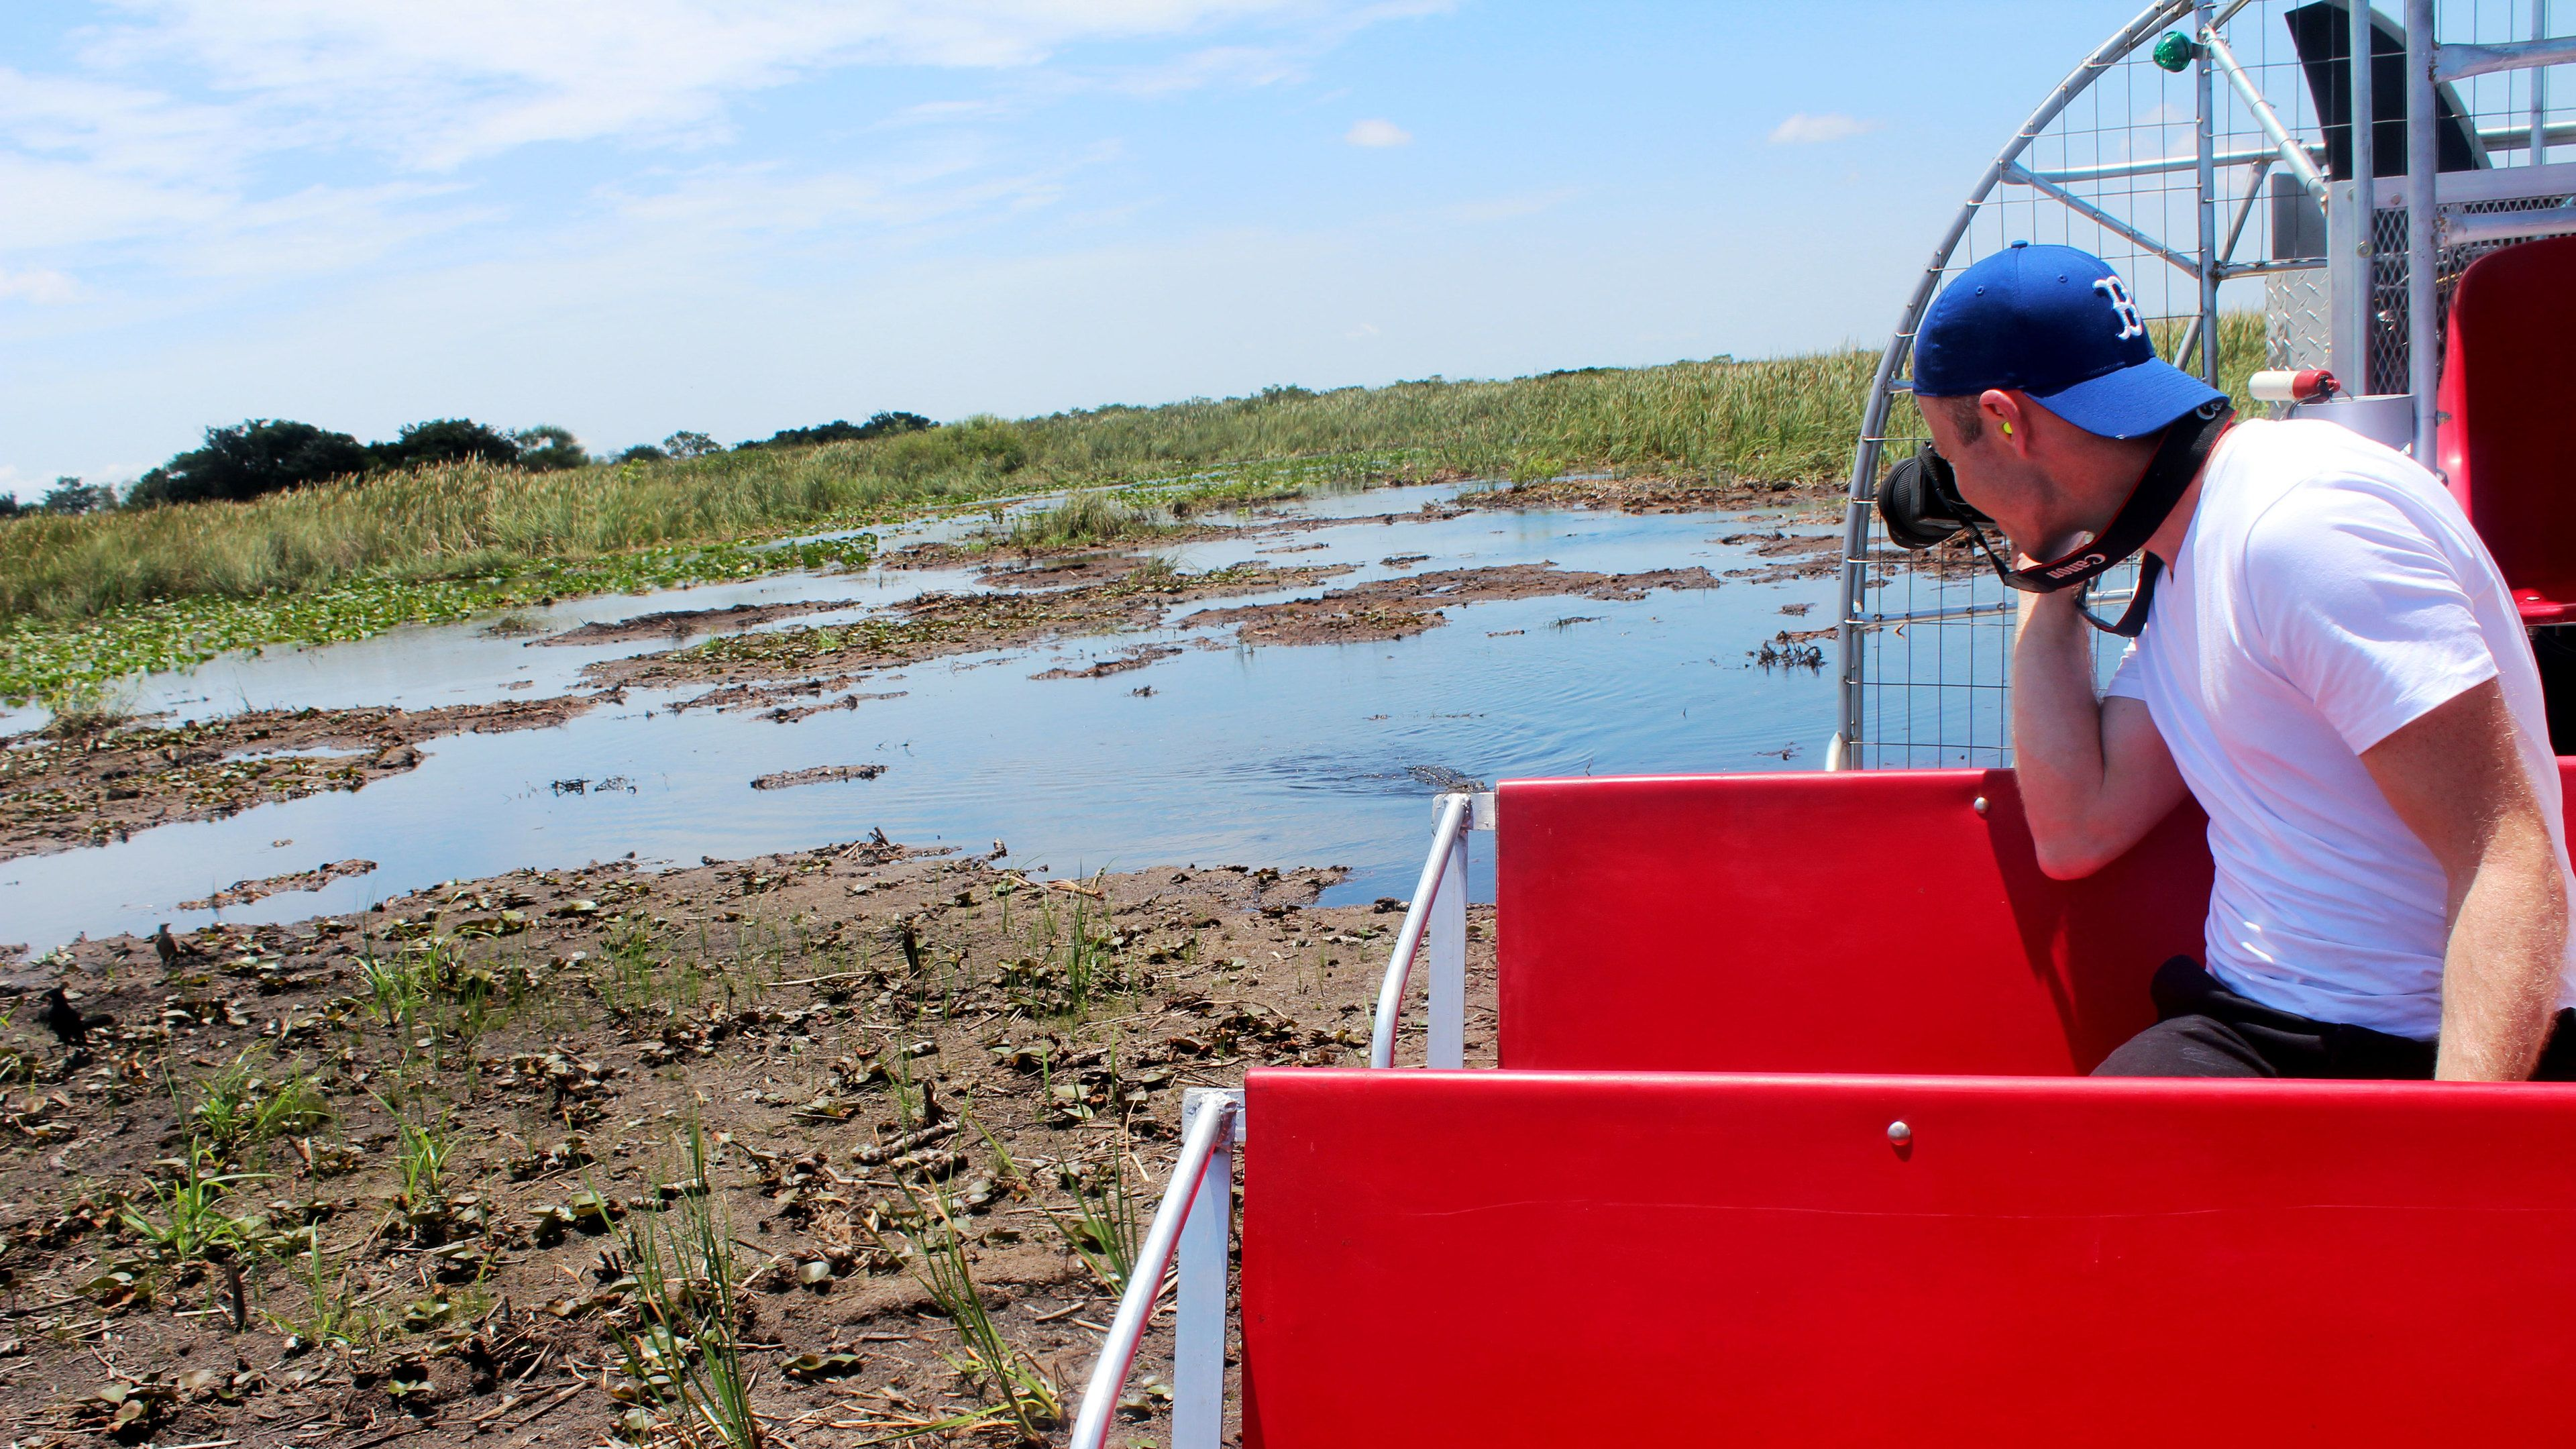 Man photographing alligator from airboat in Everglades